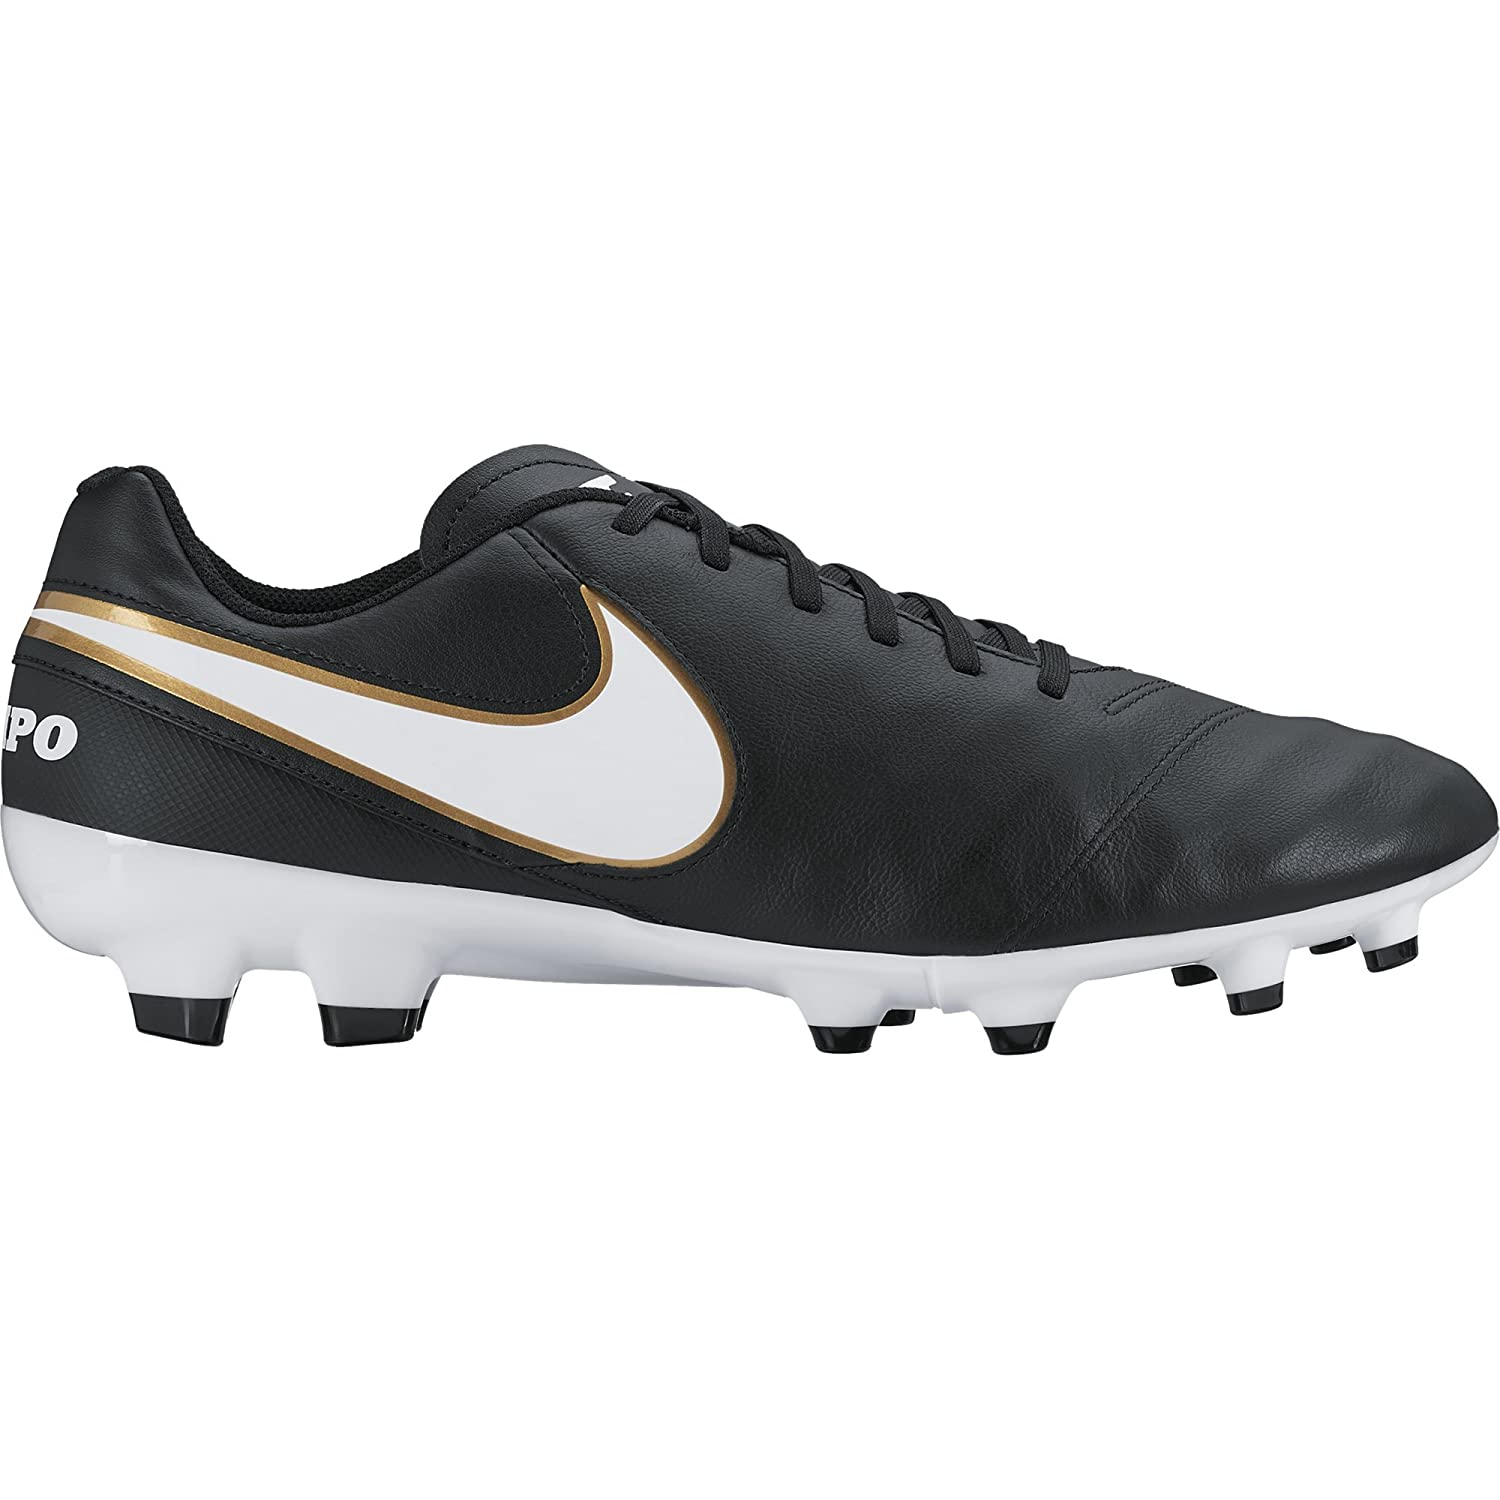 b06ae4de7 Amazon.com | Nike Men's Tiempo Genio II Leather Fg Soccer Cleat | Soccer